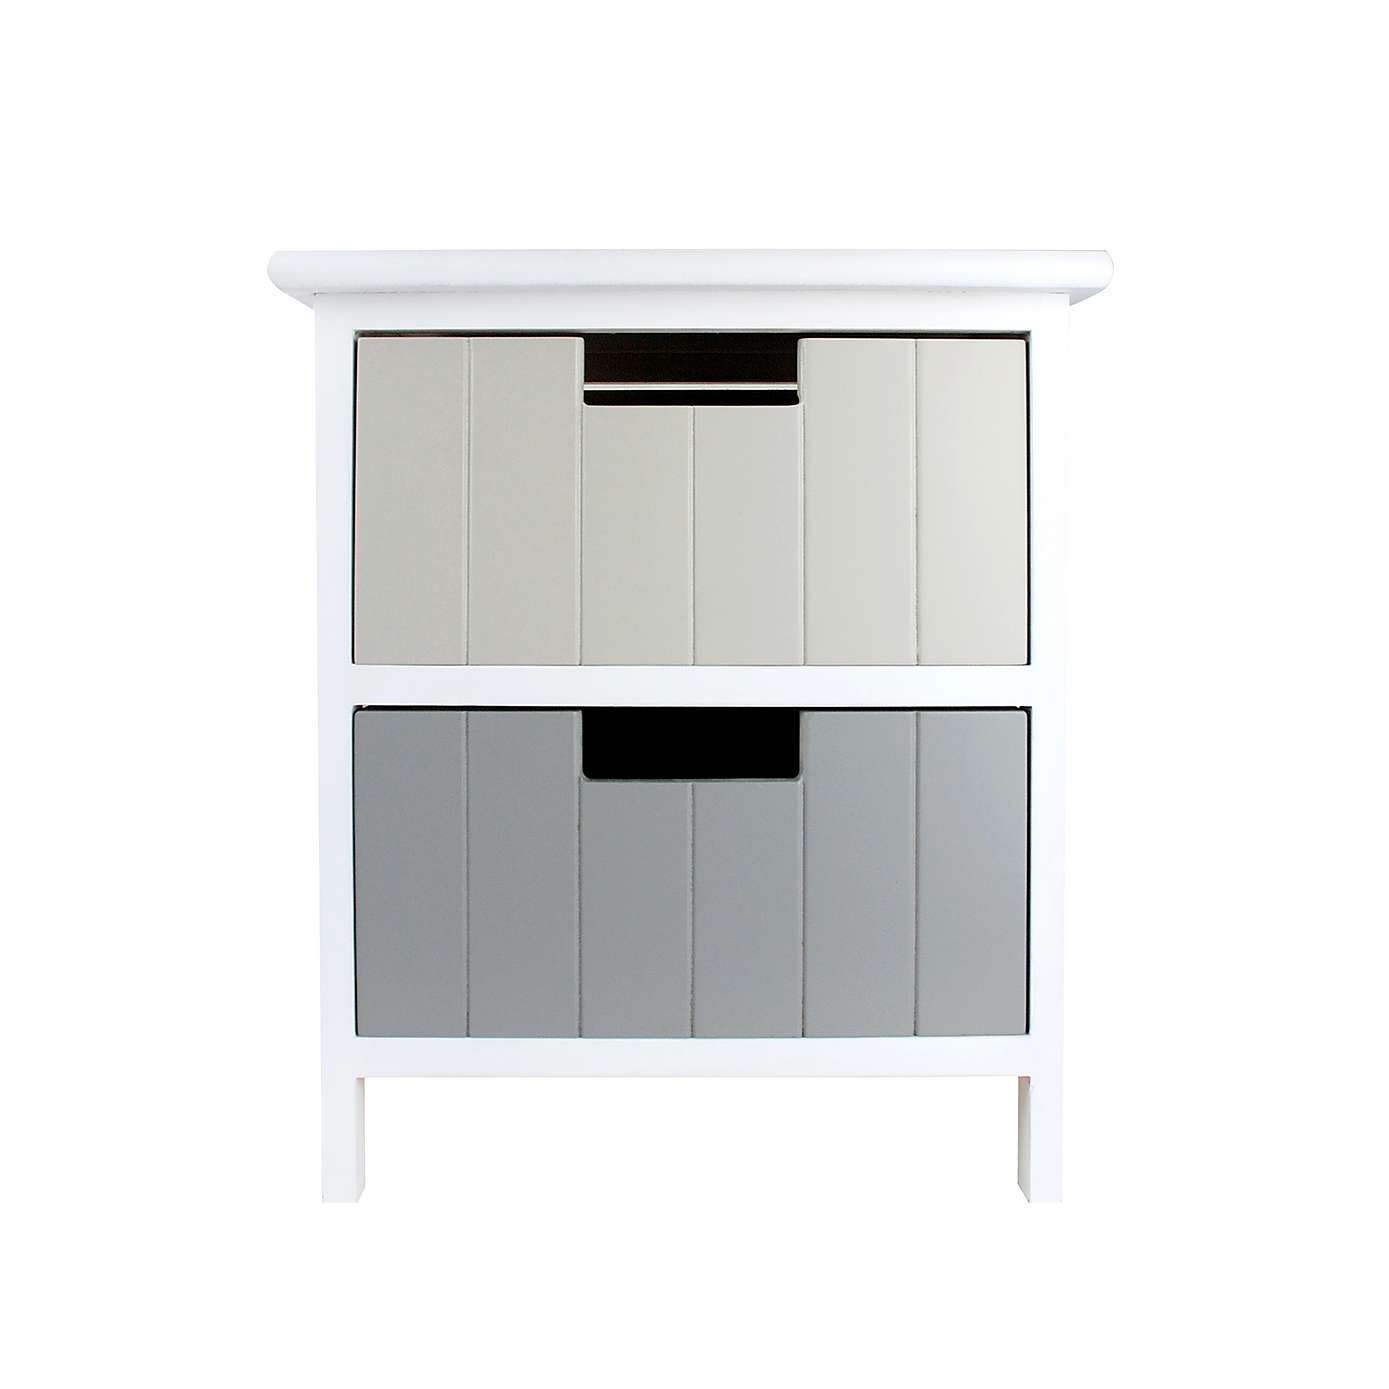 Purity 2 Drawer Tower For The Home Drawers Storage inside size 1389 X 1389